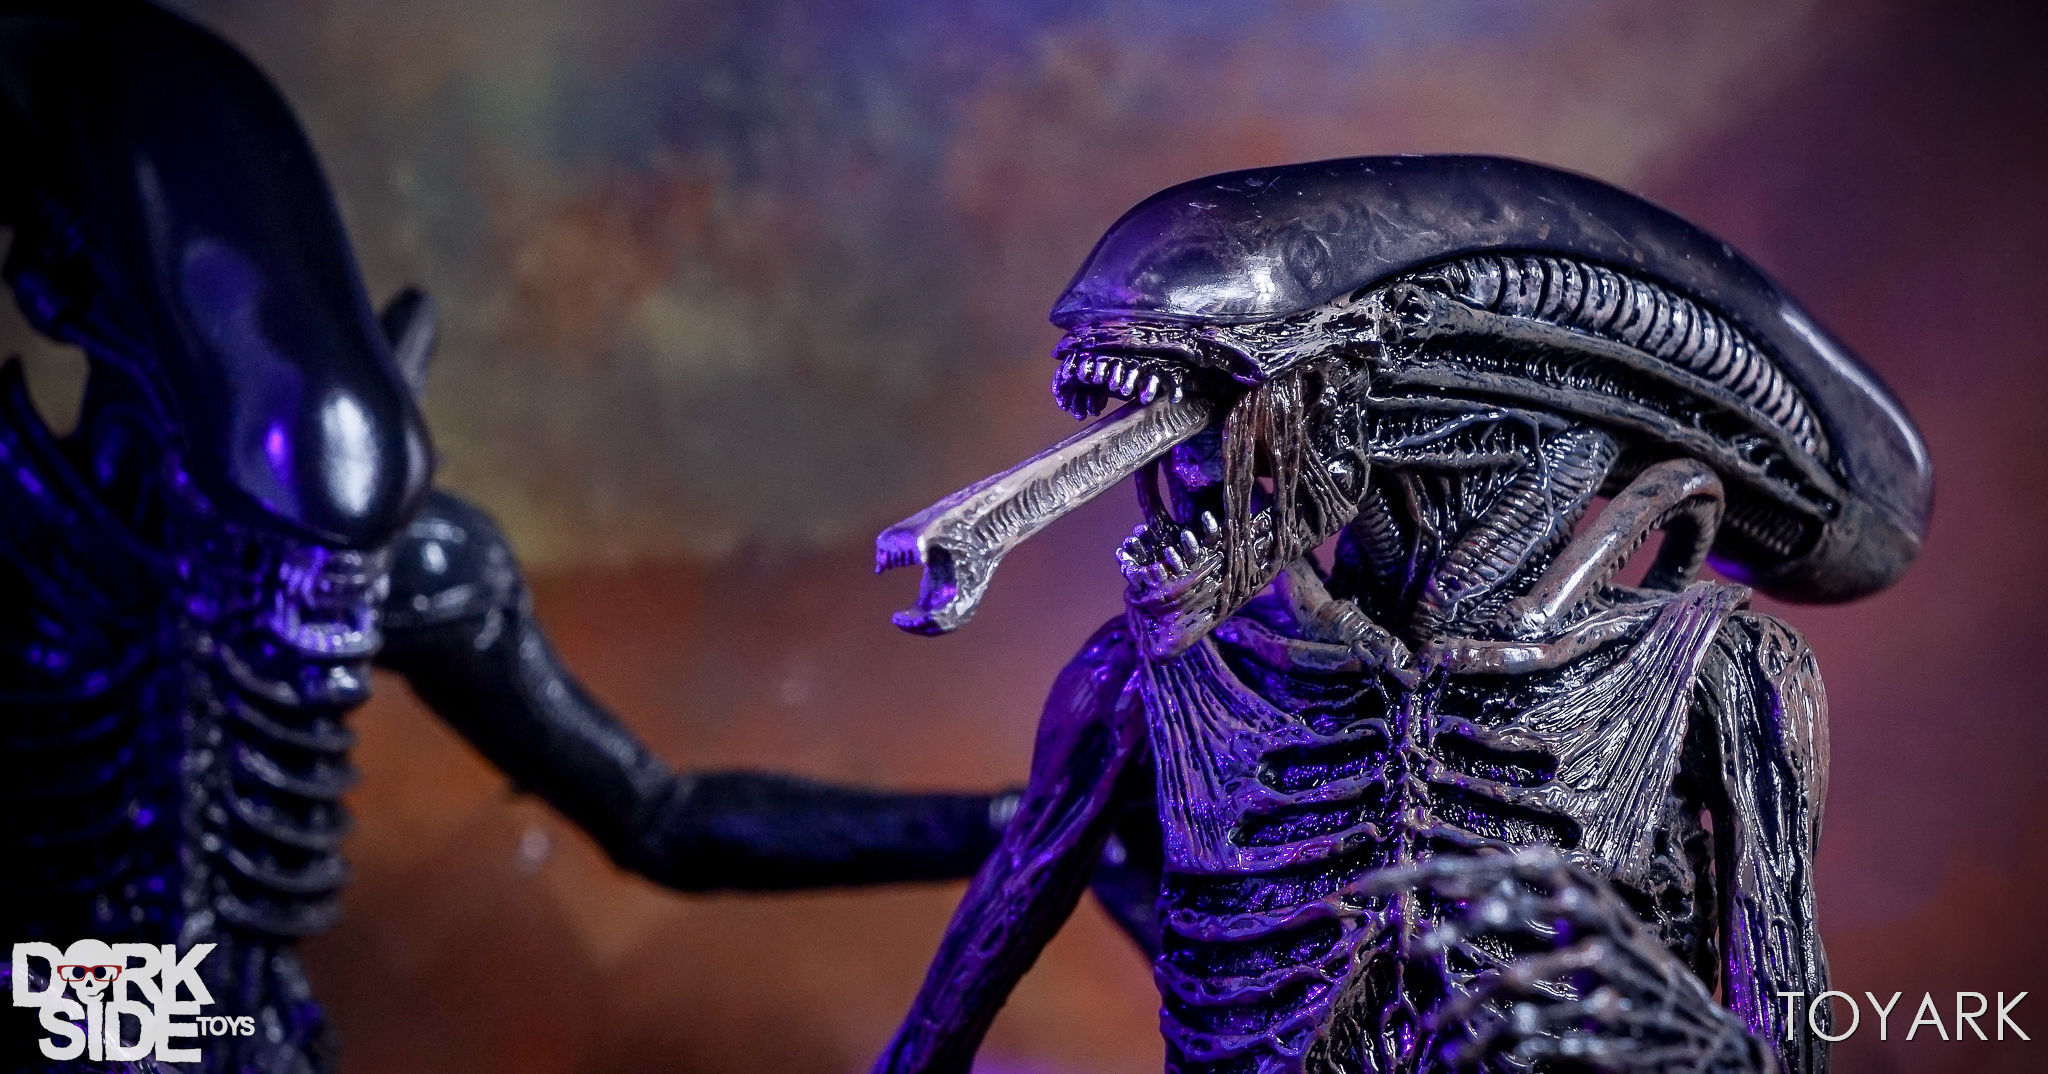 http://news.toyark.com/wp-content/uploads/sites/4/2017/08/NECA-Alien-Covenant-Figures-058.jpg